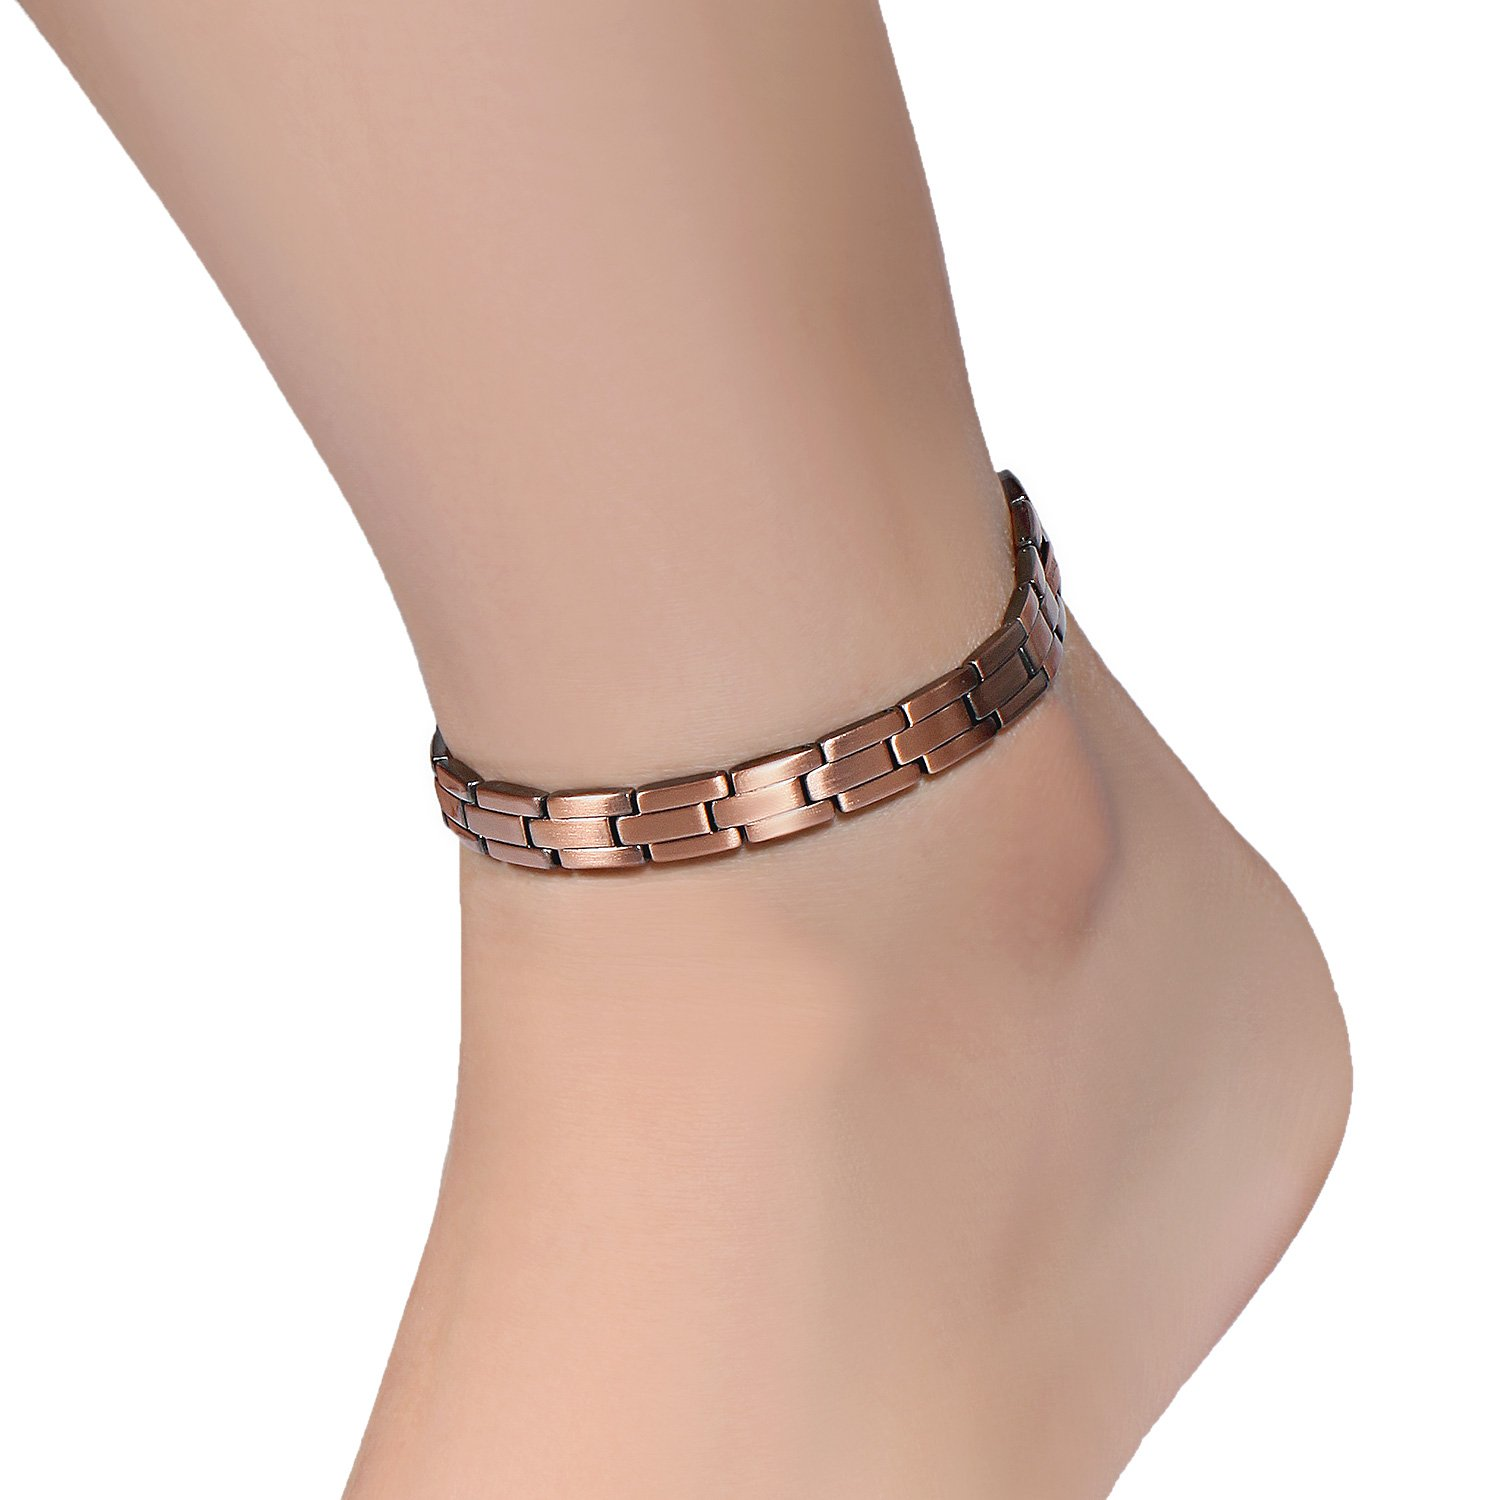 official site te eye tiger product web magnetic anklet magnehealth